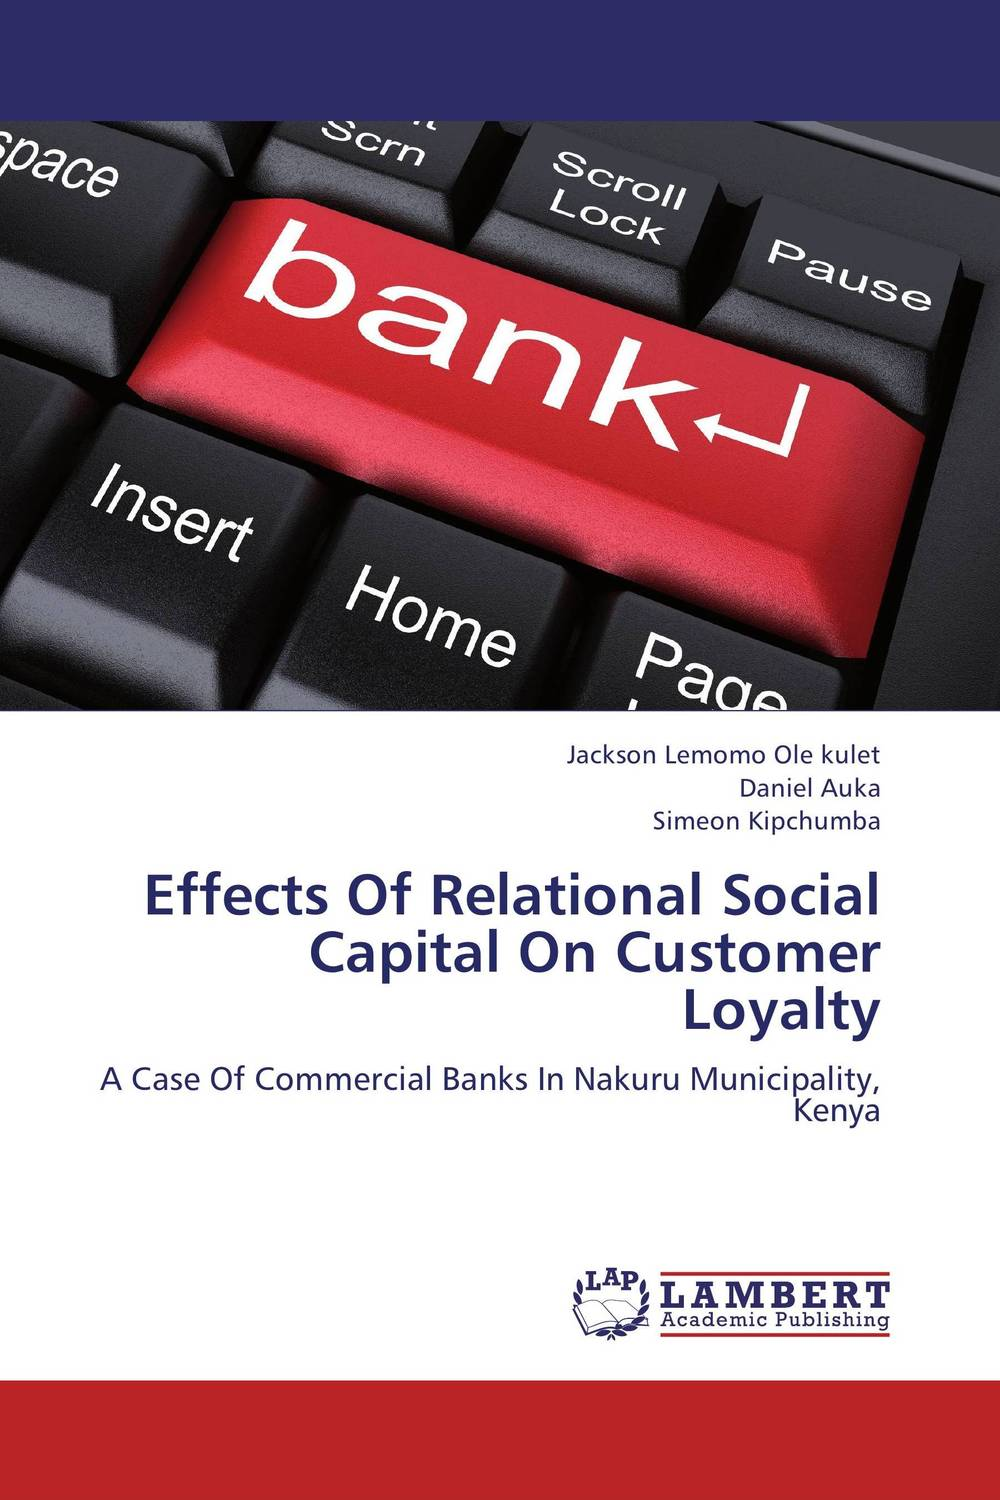 Effects Of Relational Social Capital On Customer Loyalty i manev social capital and strategy effectiveness an empirical study of entrepreneurial ventures in a transition economy